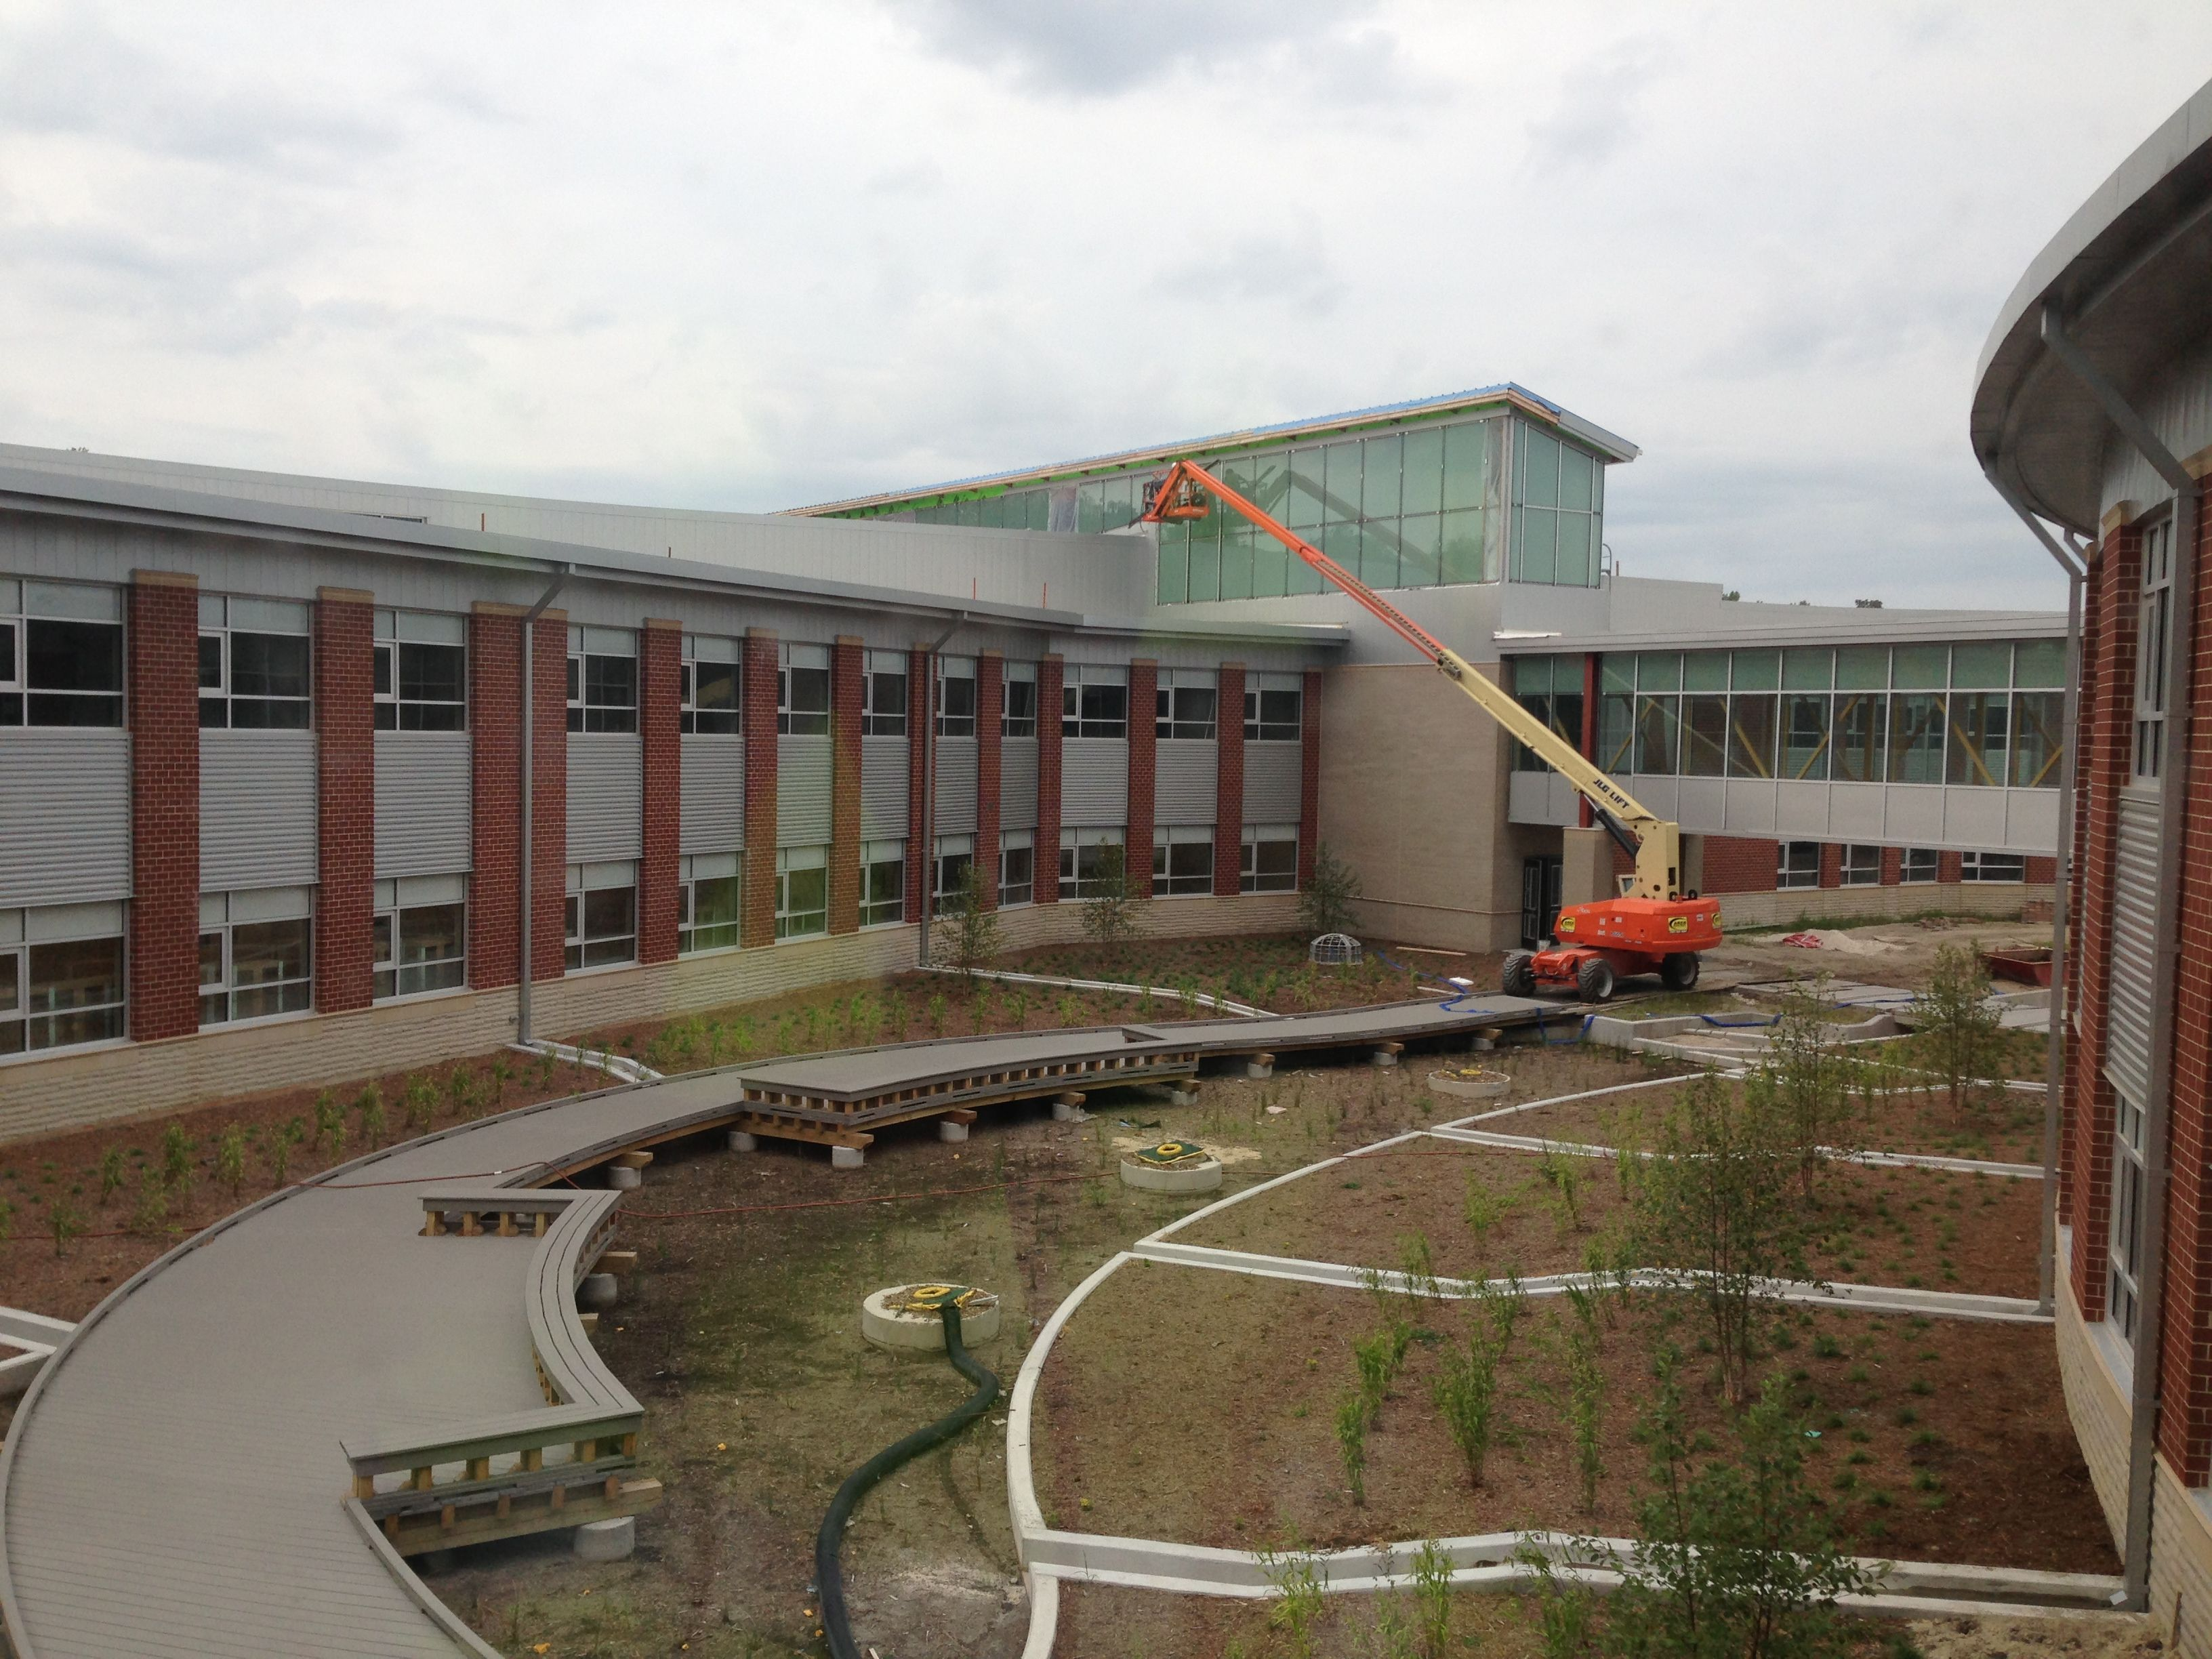 Delightful The New Kellam High School In Virginia Beach  Construction Of The  Infiltration Gardens, Where